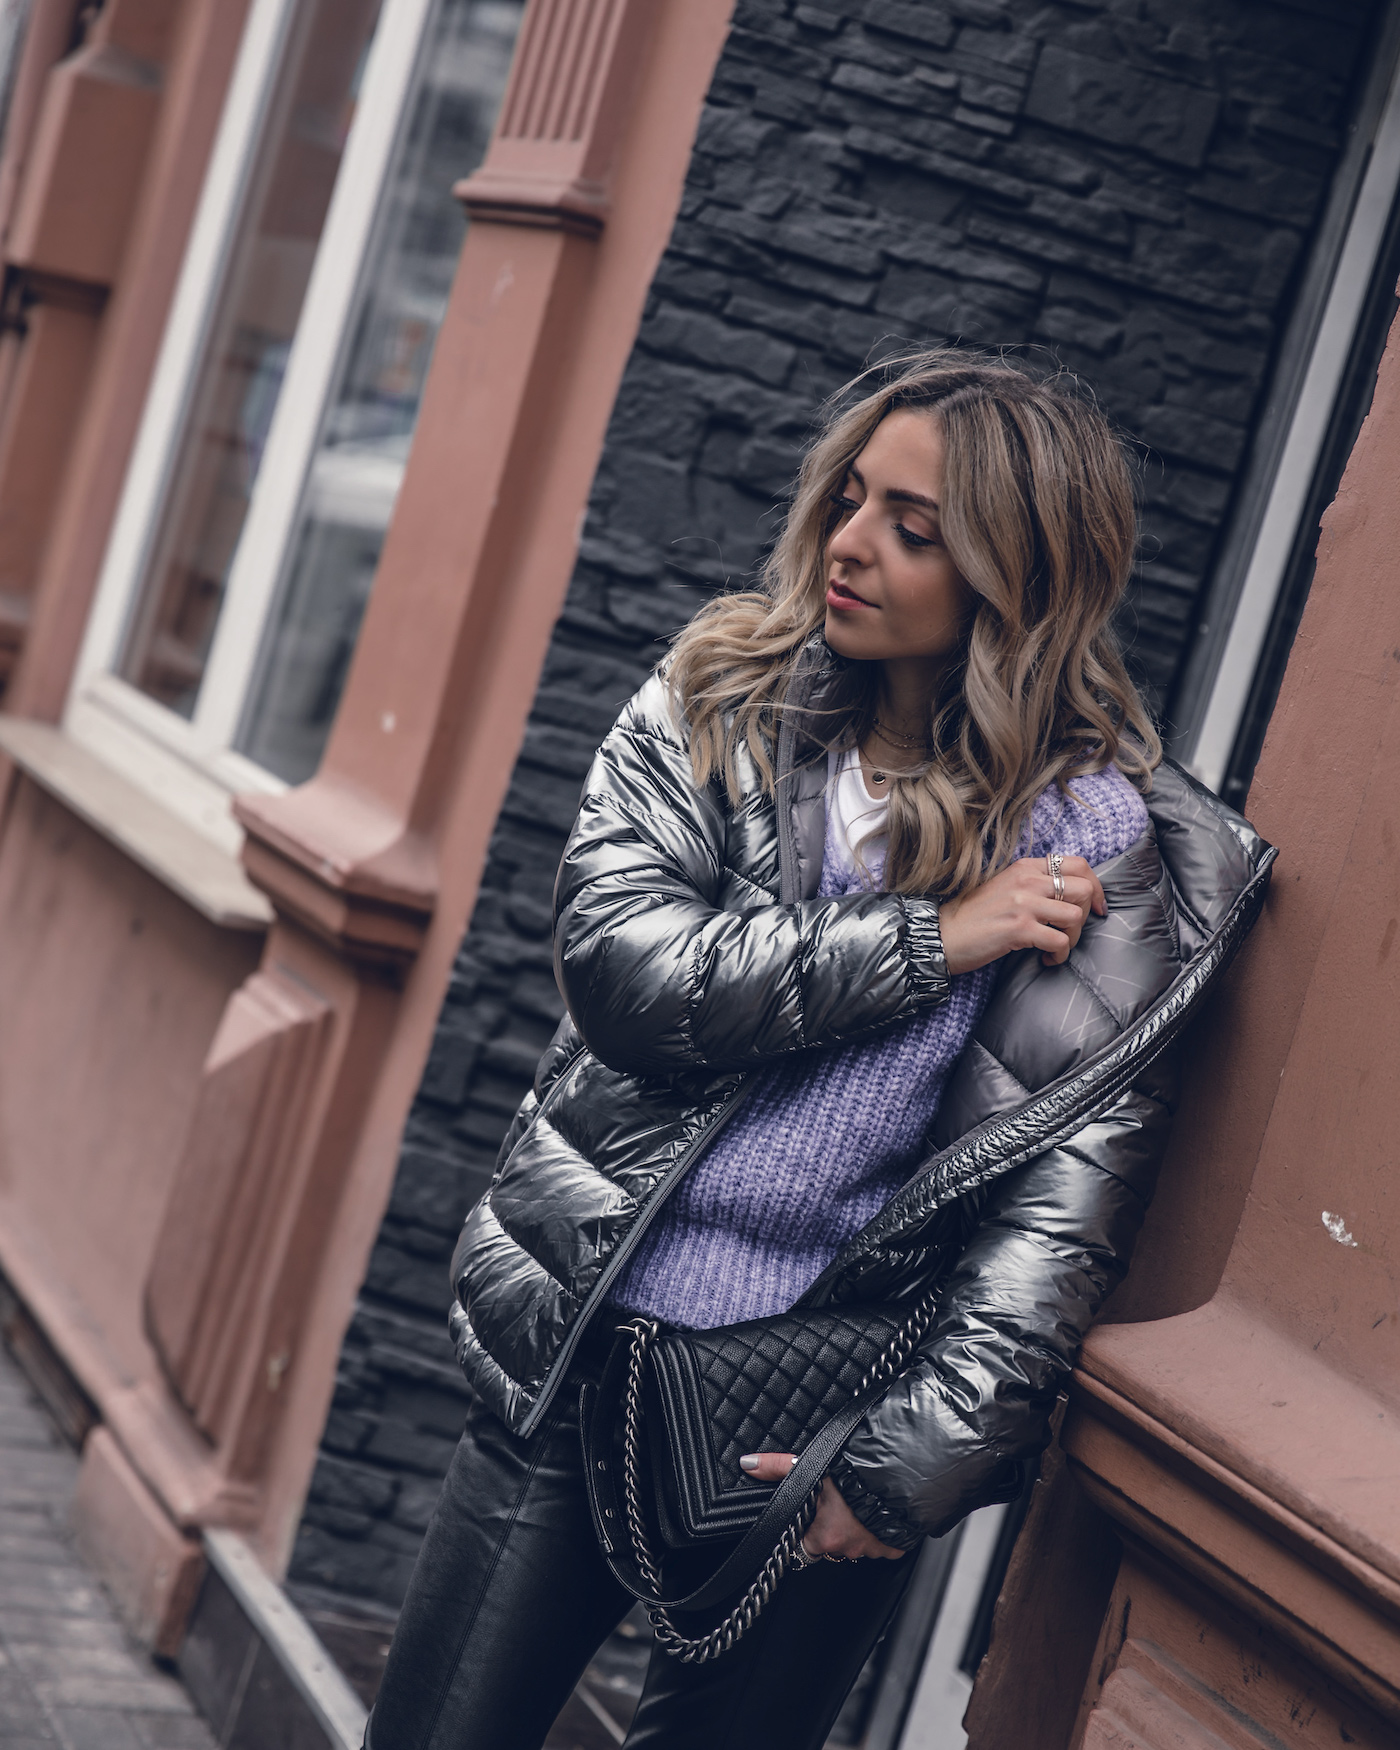 Winter Jackets Women 2017 Cold Weather Must-Haves Fashion Casual Puffy Coats | seen on Want Get Repeat Blog